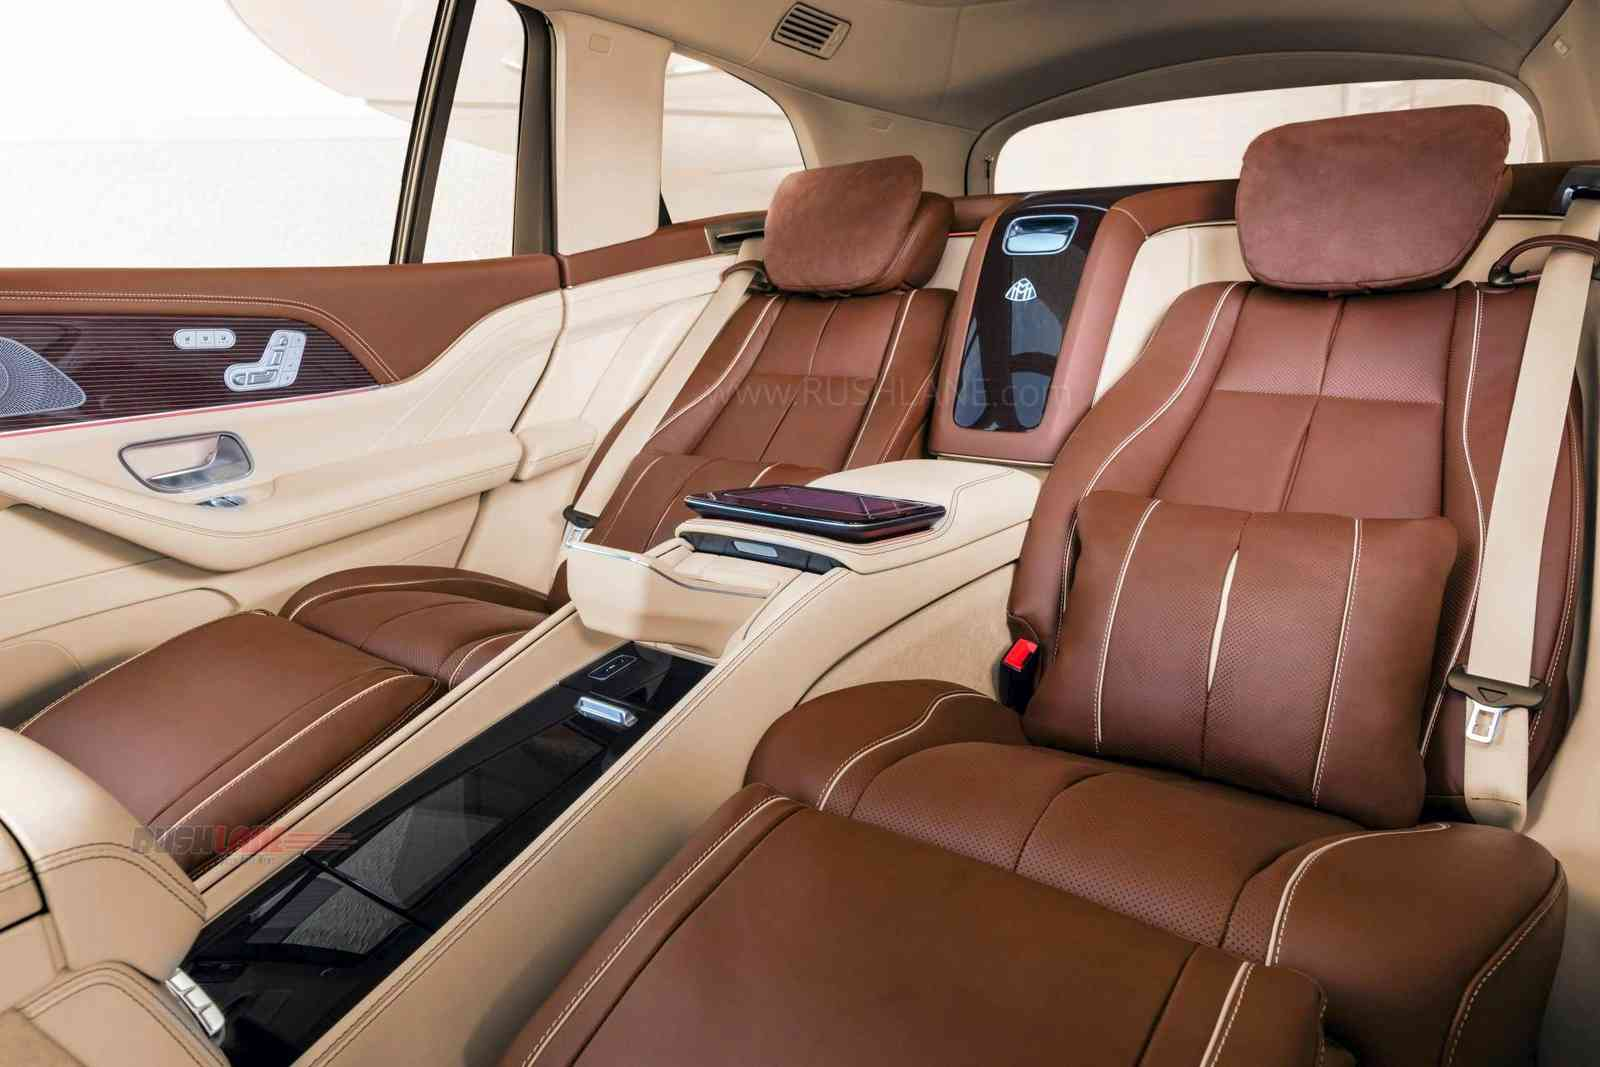 Mercedes Maybach GLS 600 debuts - Most luxurious SUV from ...